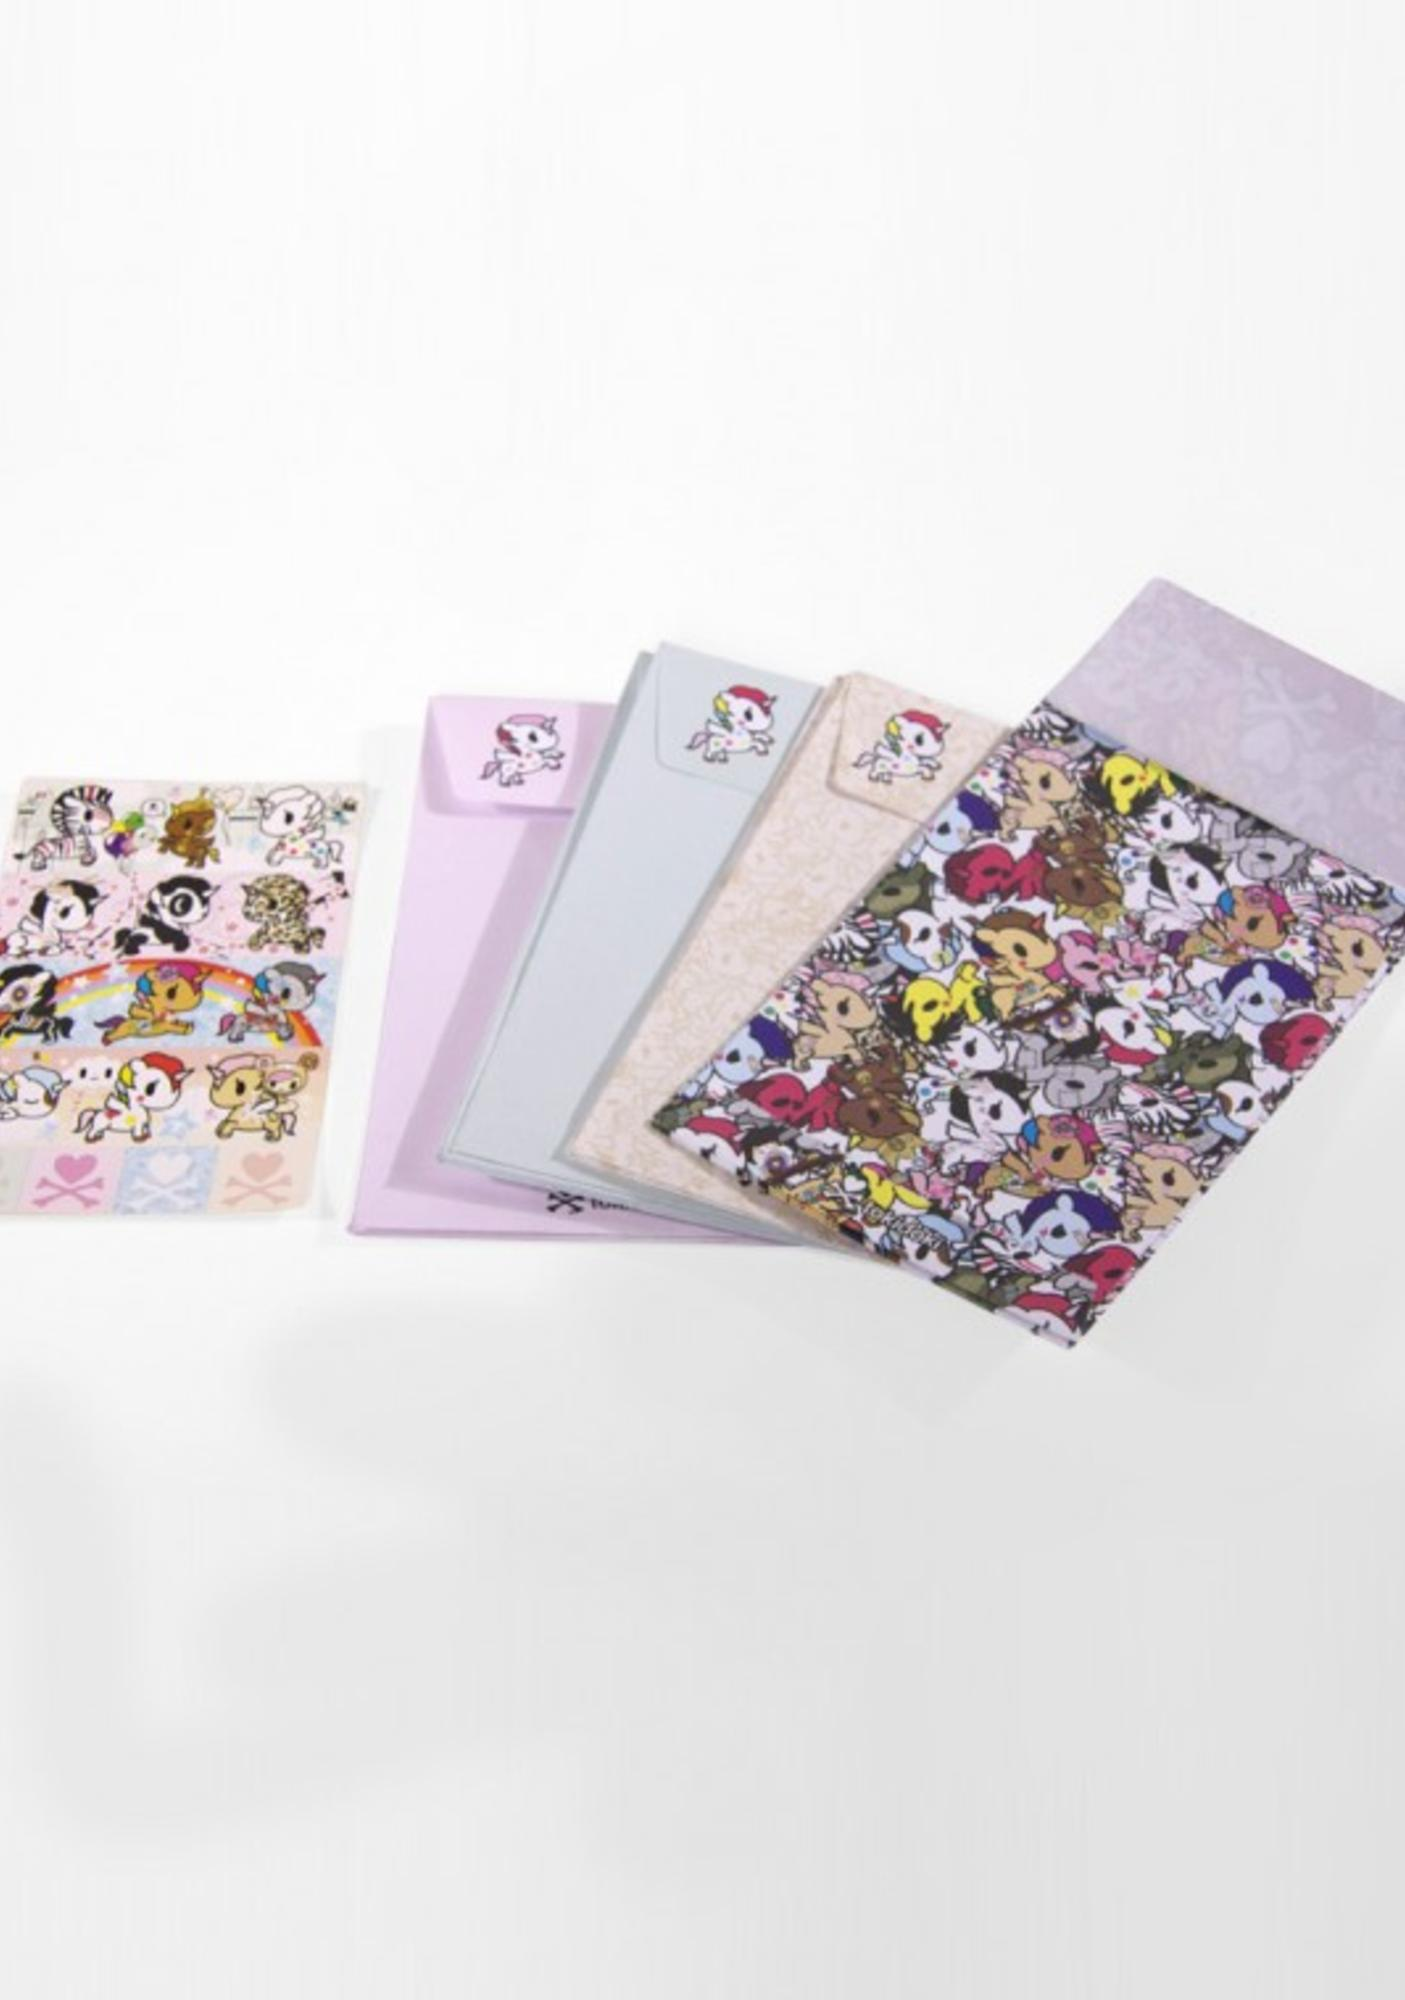 Tokidoki Unicorno Stationary Kit